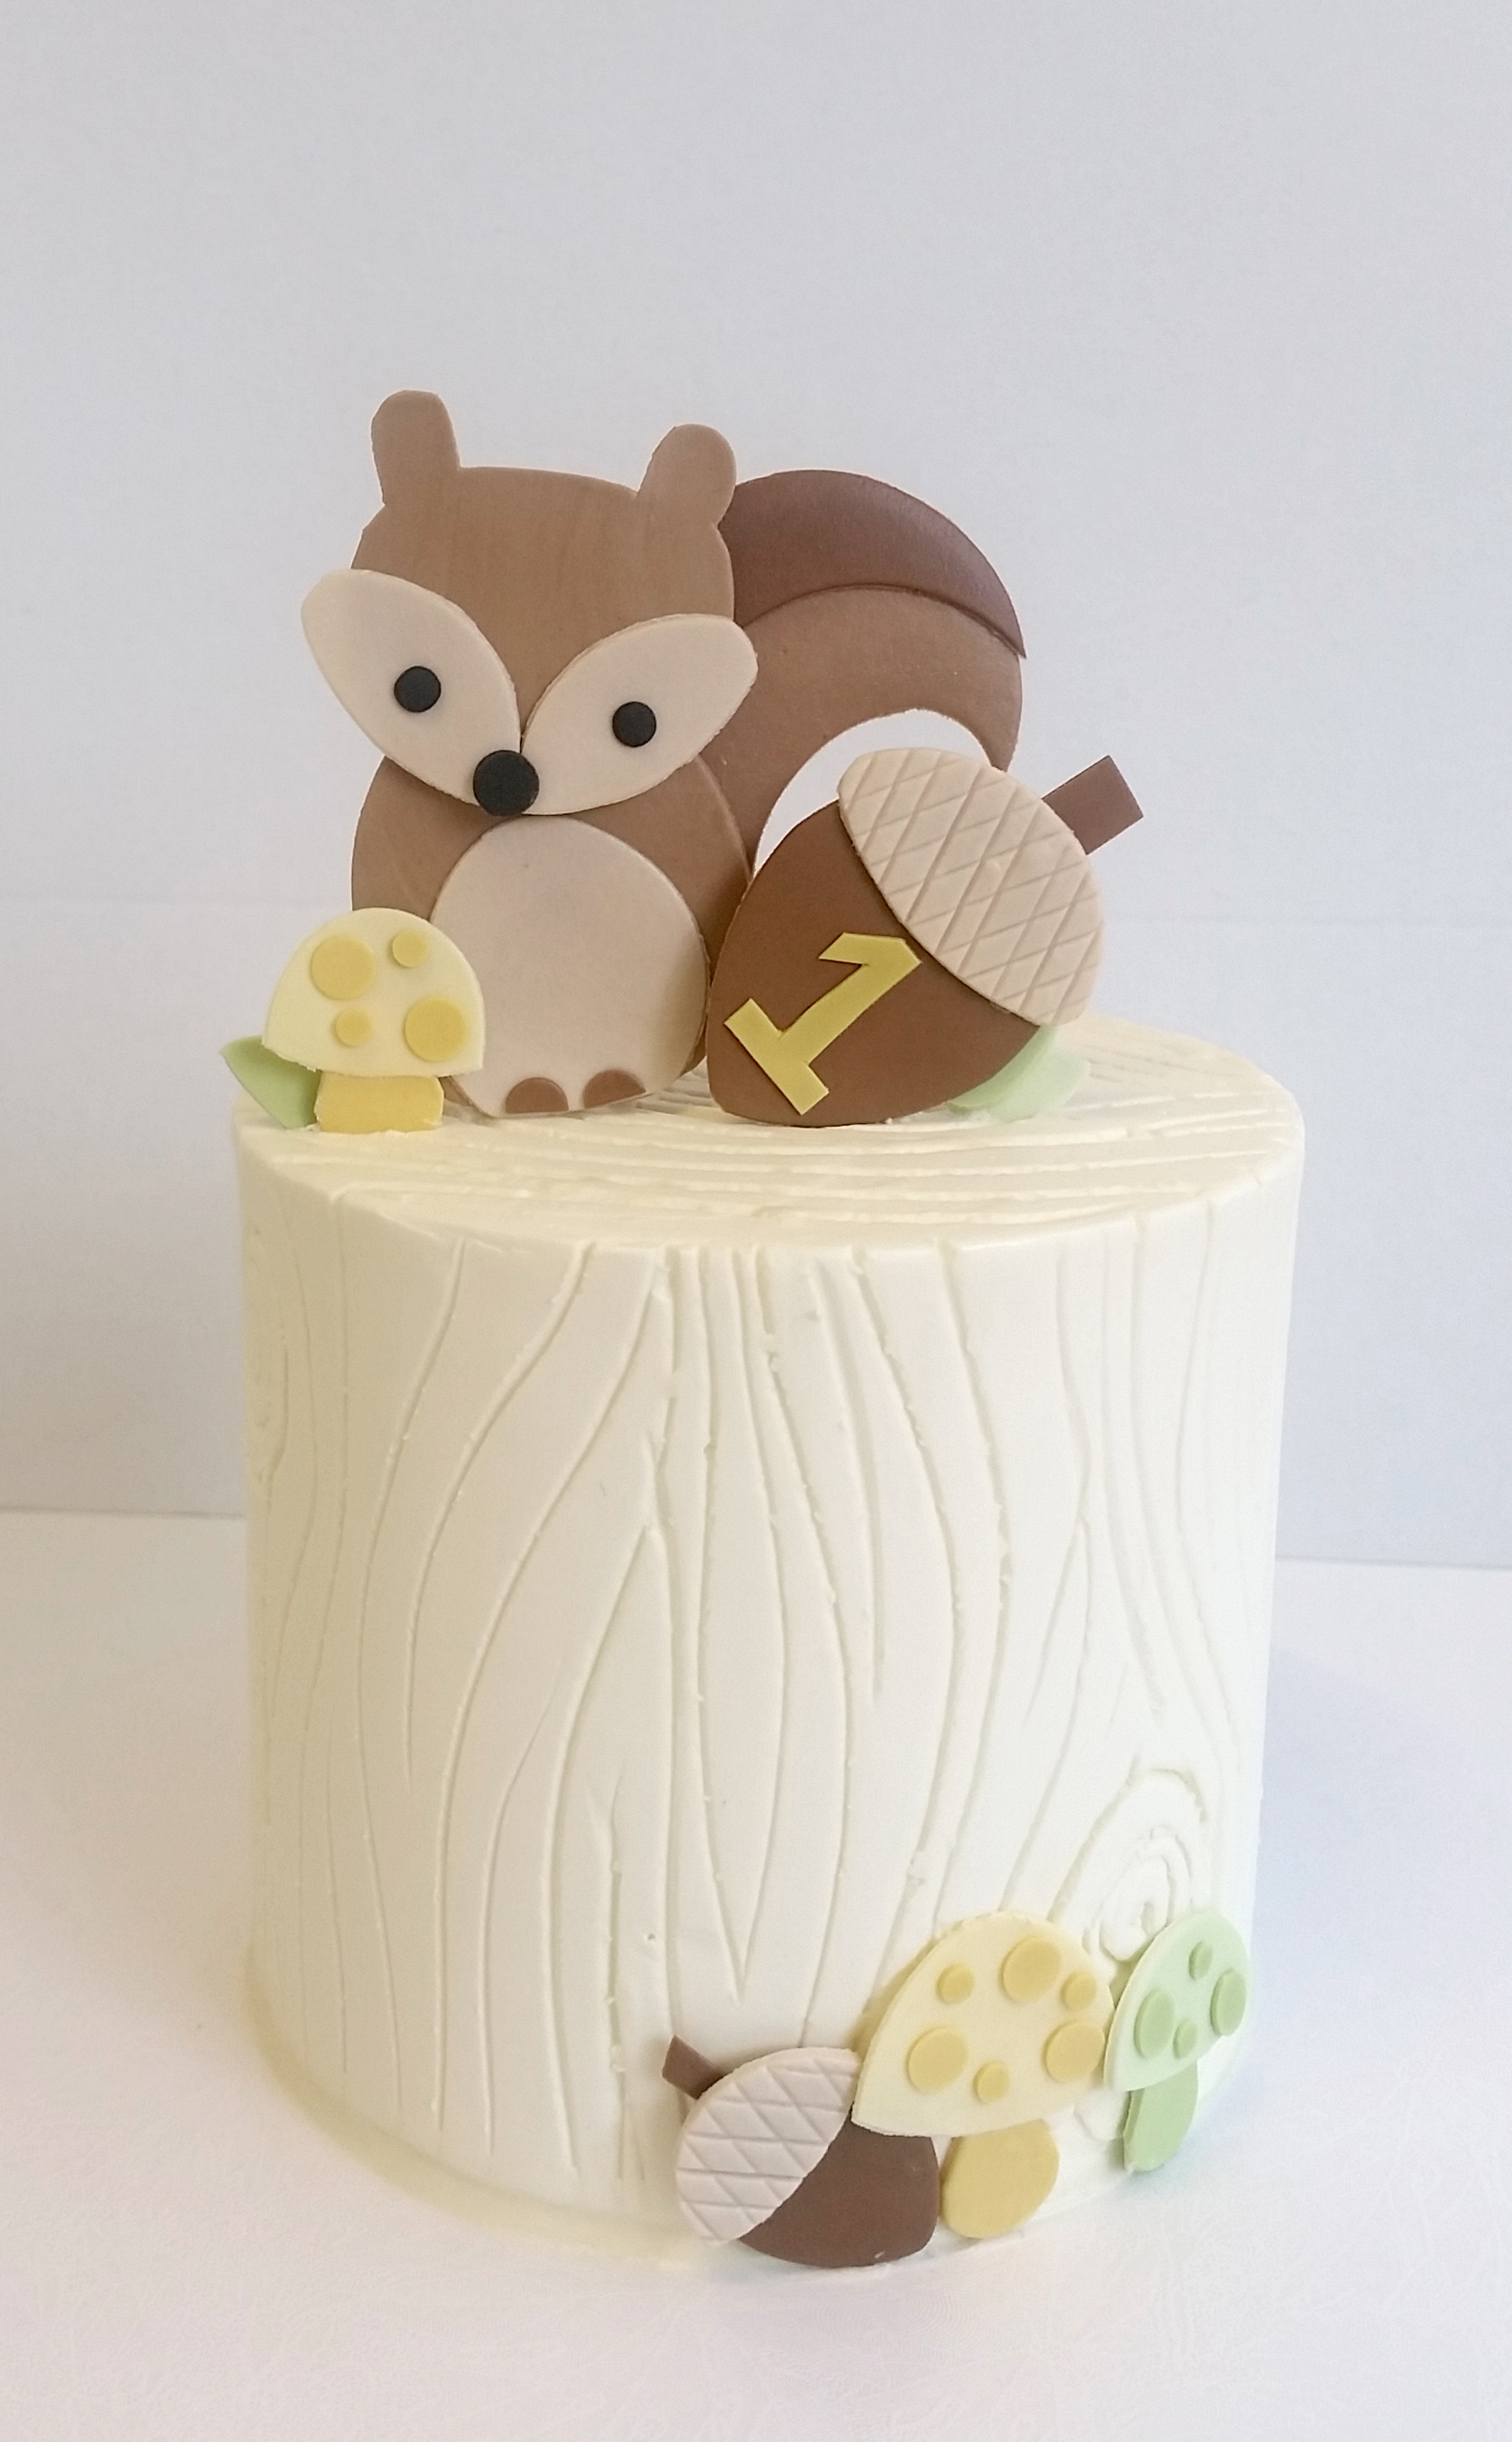 buttercream woodgrain animals single.jpg